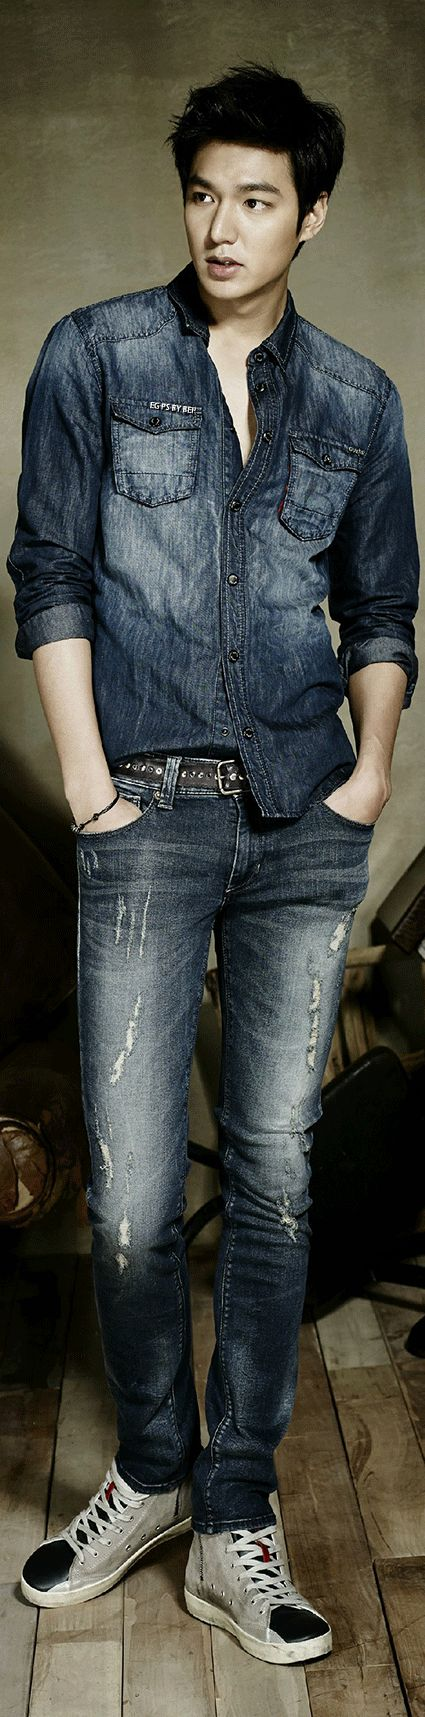 The photos show the actor looking suave as usual with his stylish hair and intense expressions. Lee Minho can be seen lounging on the ground, showing off his long lean body as well as going for the couple look with an equally good looking female model. Minho sports varying shades of denim clothing, pants and jackets alike, and matches them with fashionable, comfortable shirts.